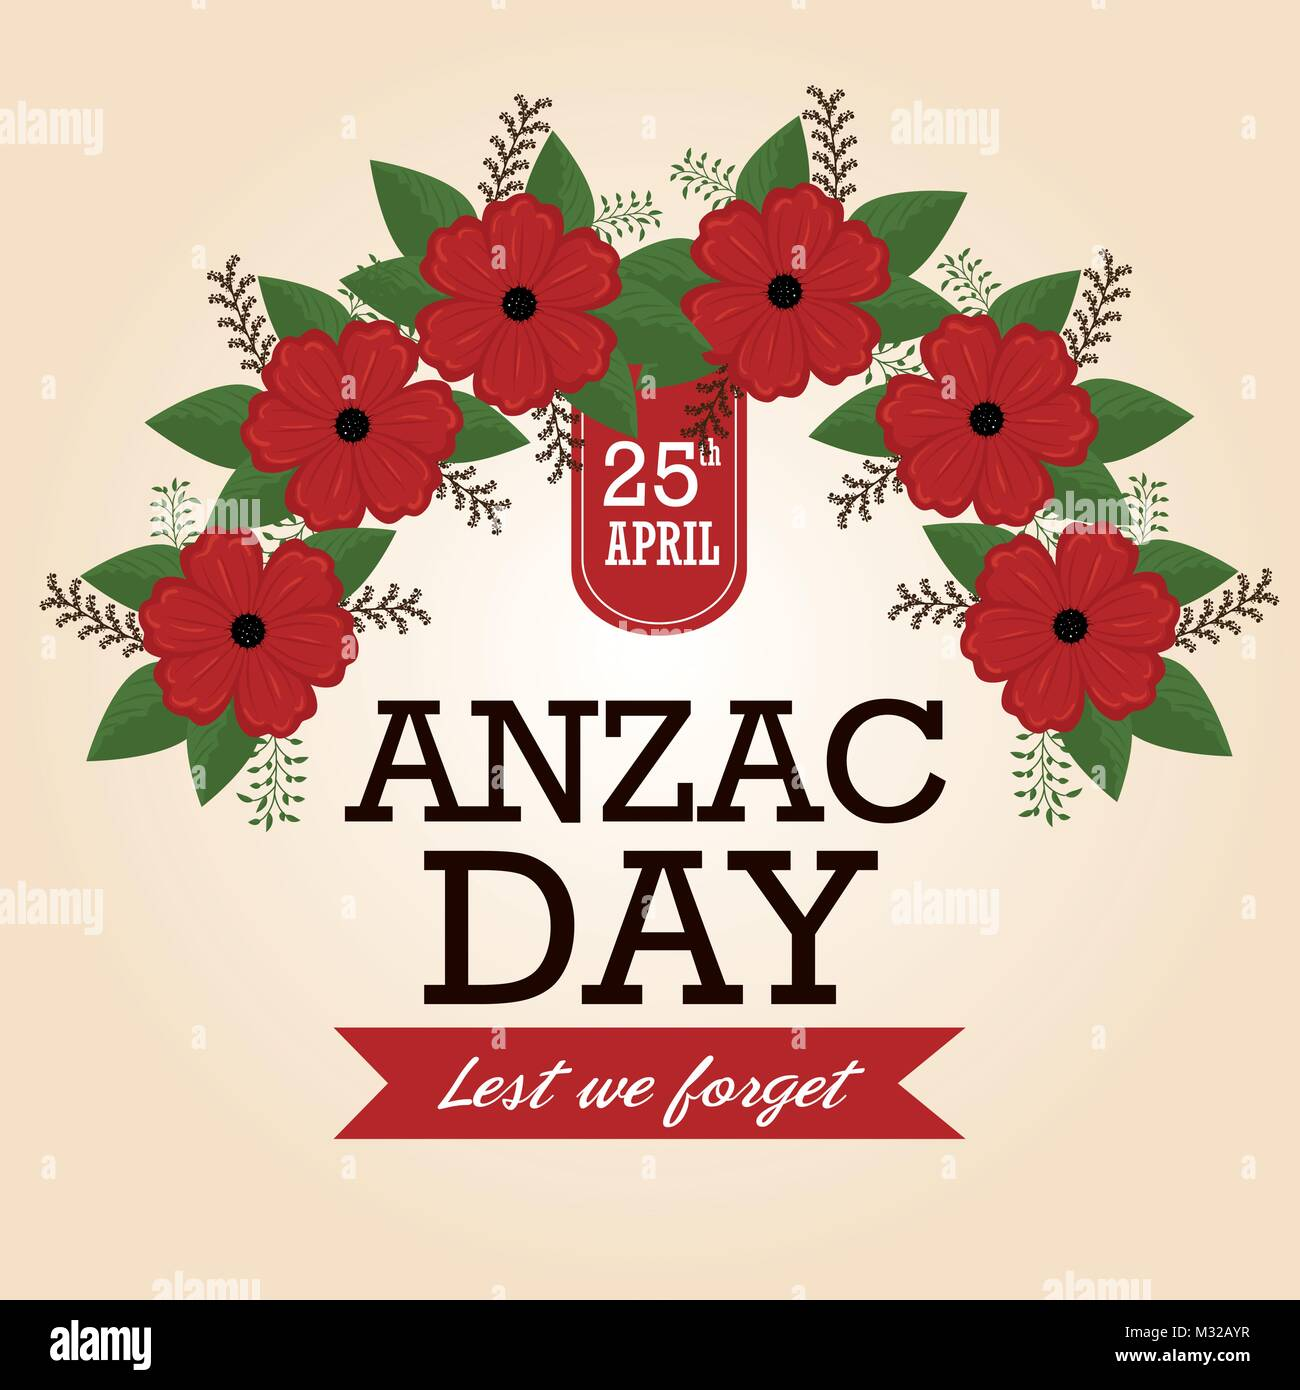 Anzac day poster with red poppy flower stock vector art anzac day poster with red poppy flower mightylinksfo